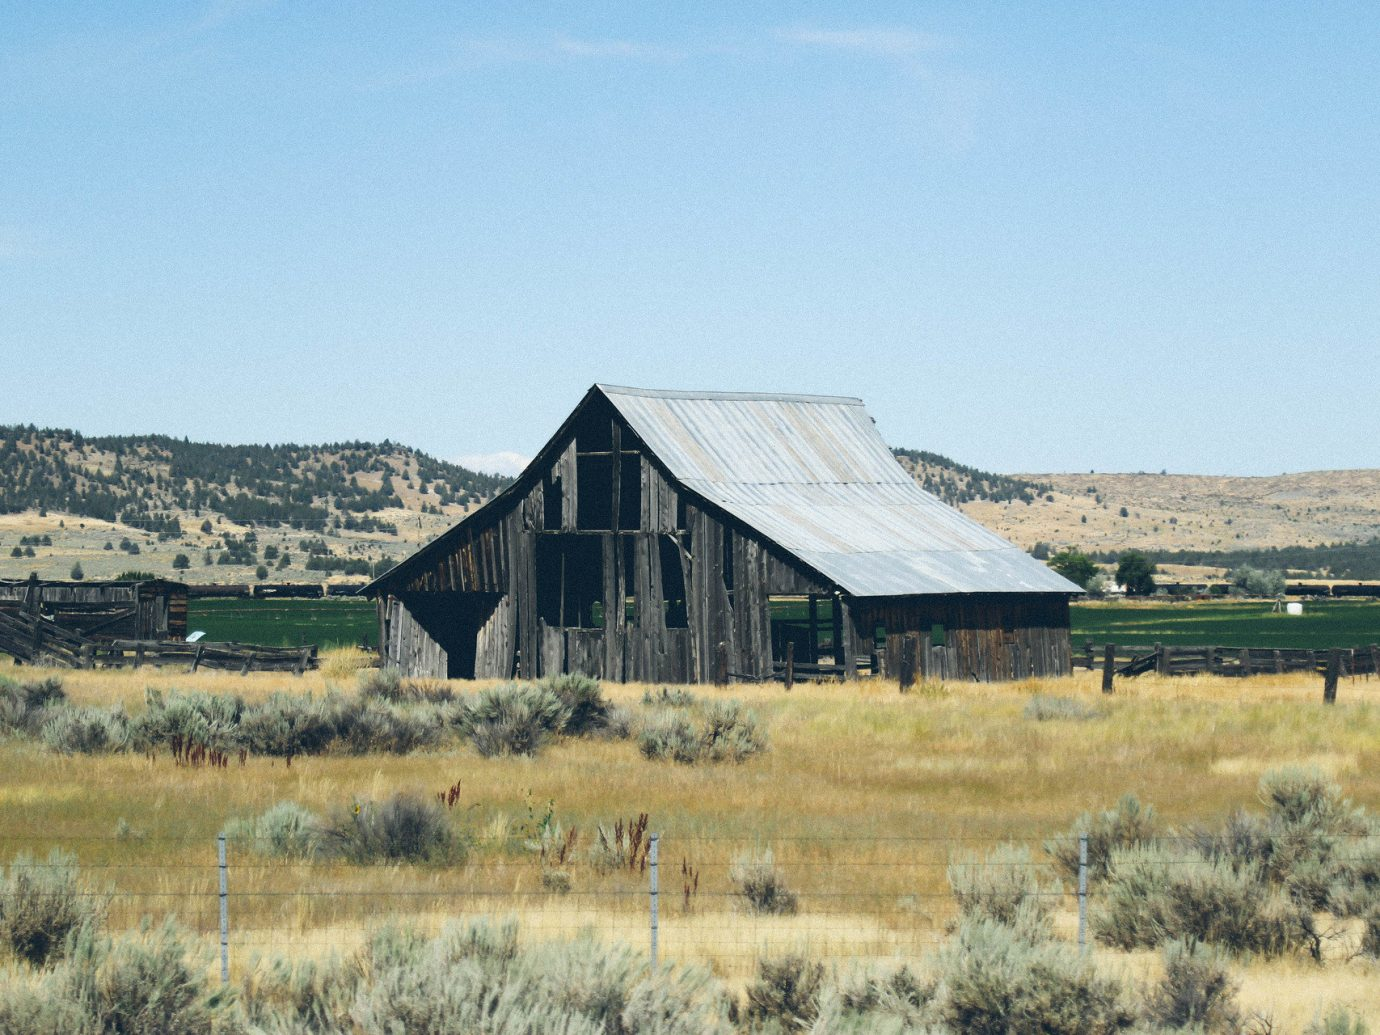 Jetsetter Guides Road Trips grass outdoor sky field building barn farm building pasture natural environment plain prairie grassland Farm rural area steppe landscape grassy Ranch house dry stable lush